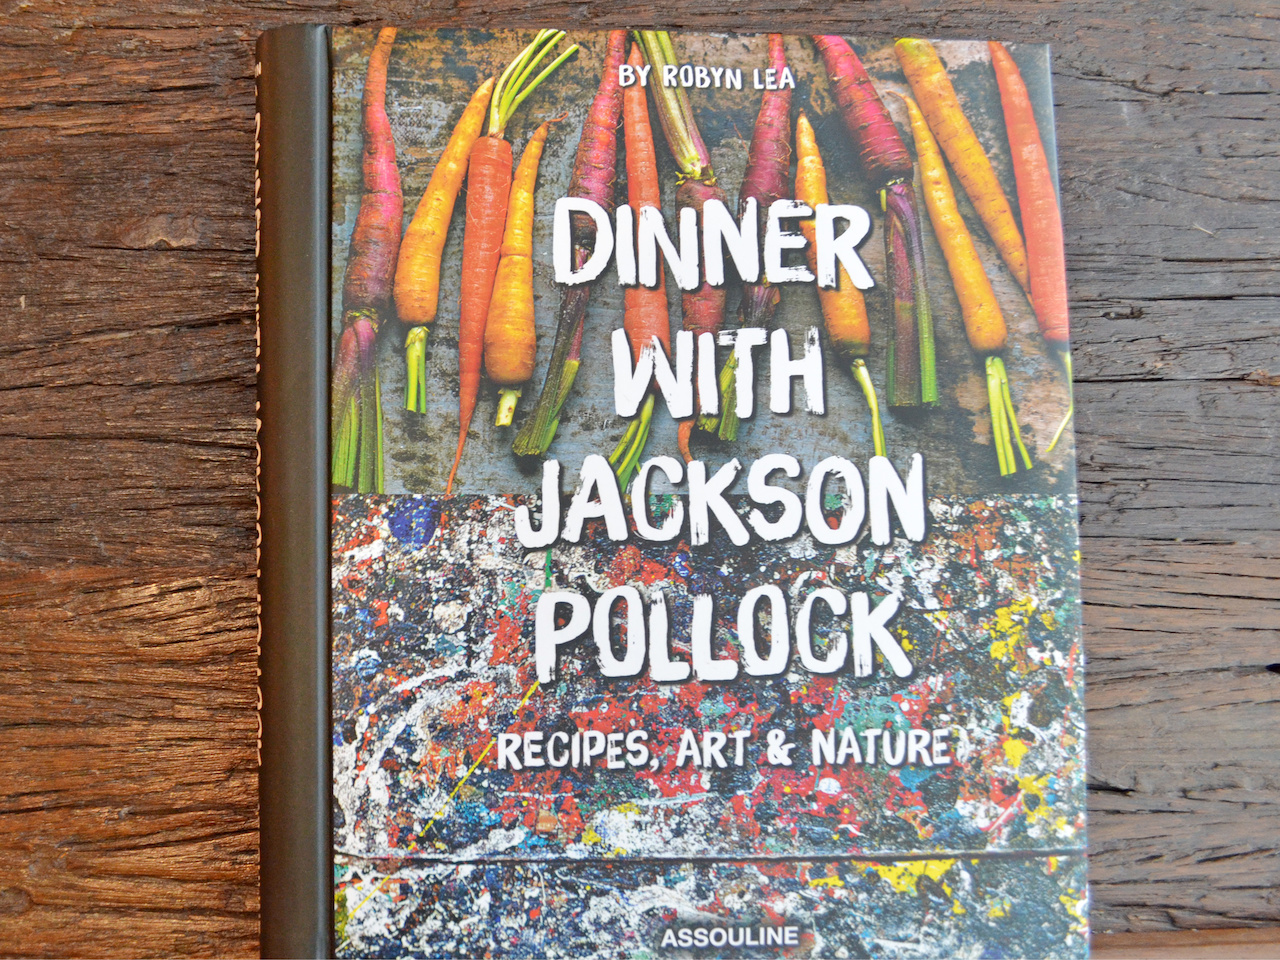 Grab a few friends and head to the kitchen to make delicious summer meals from this book!